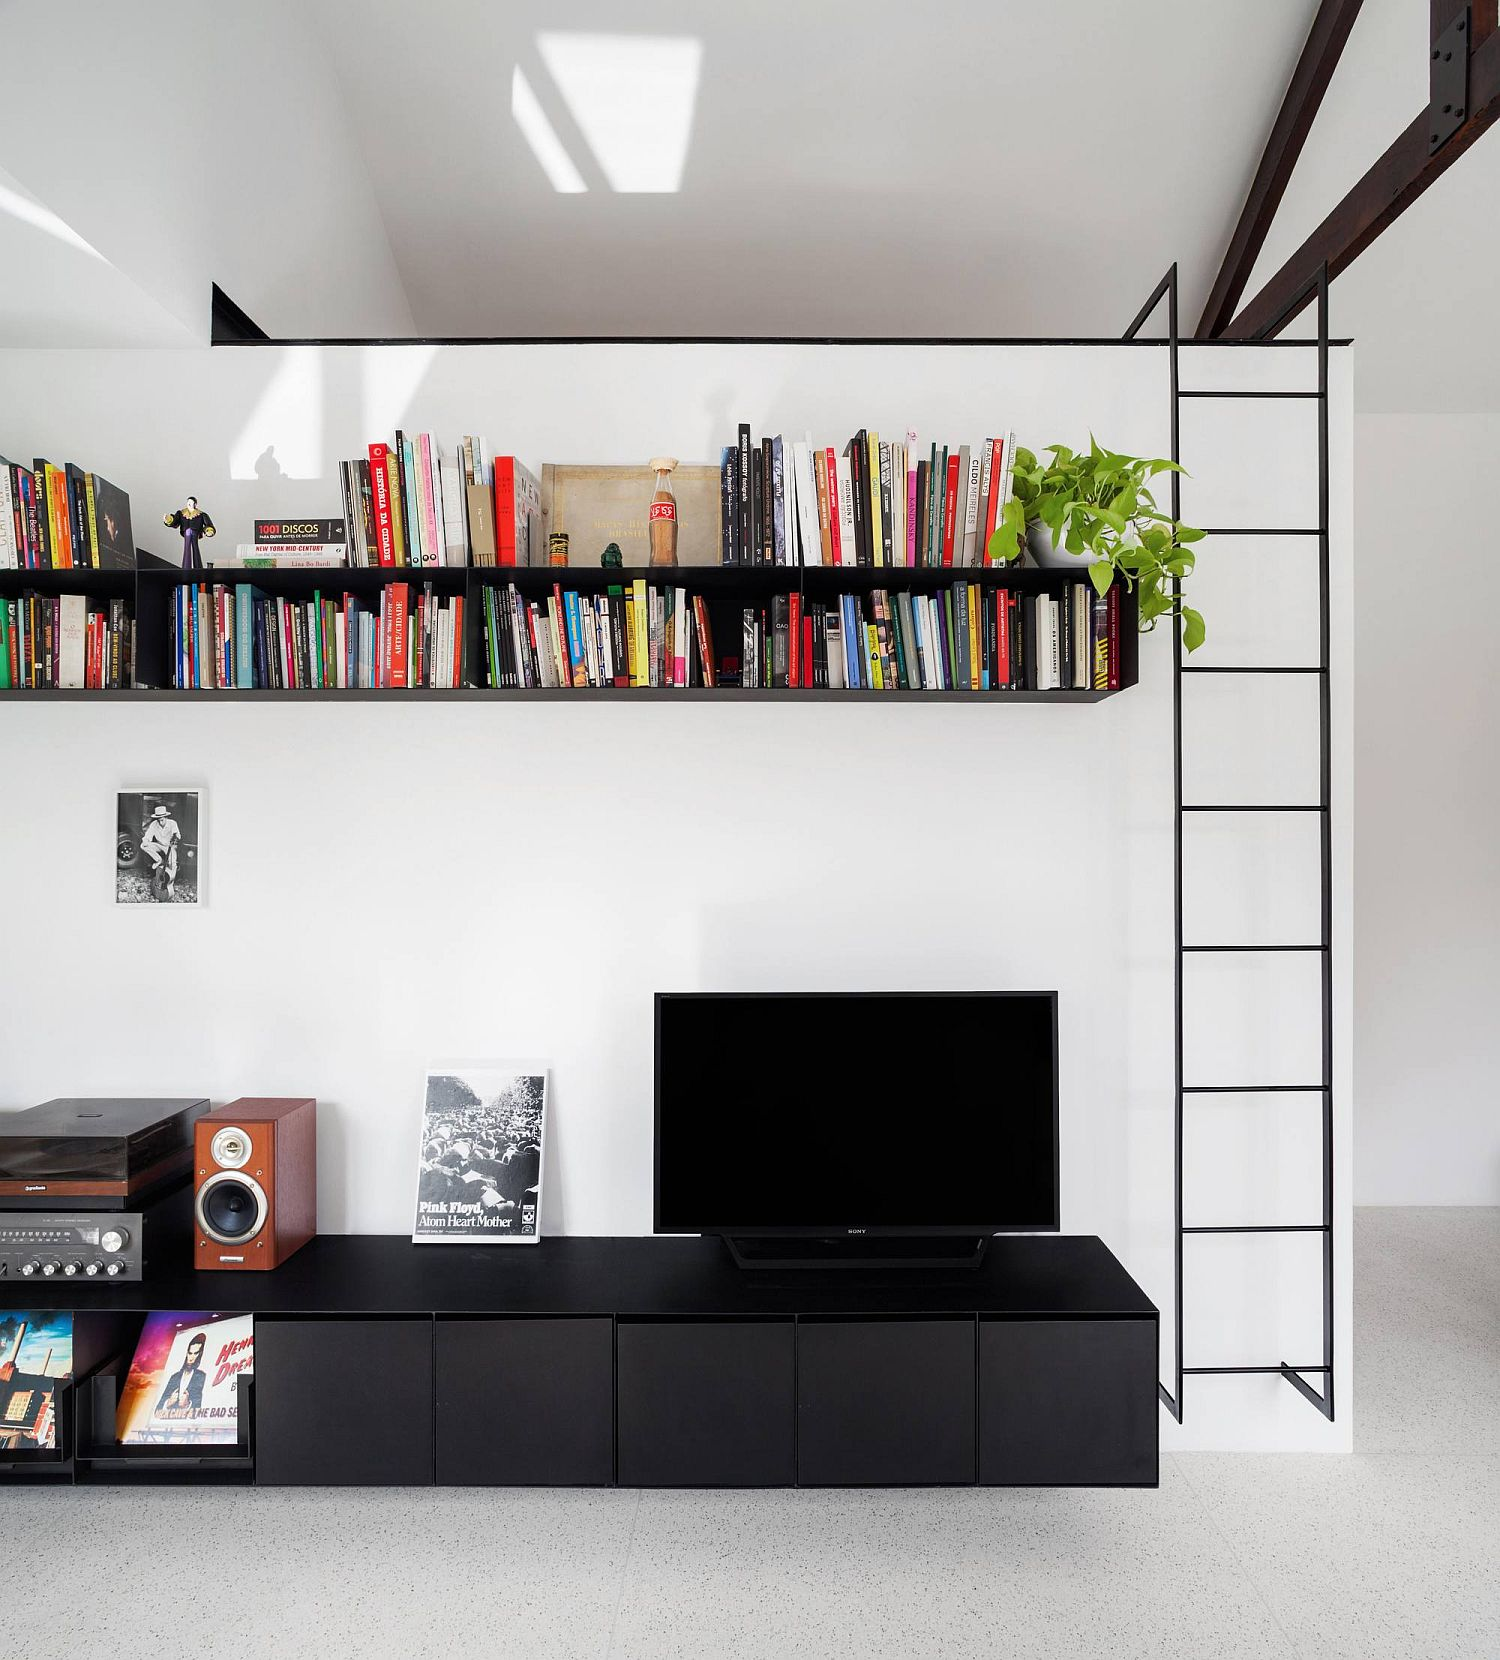 50 Tiny Apartment Storage and Shelving Ideas that Work for ... on Small Apartment Organization  id=20218